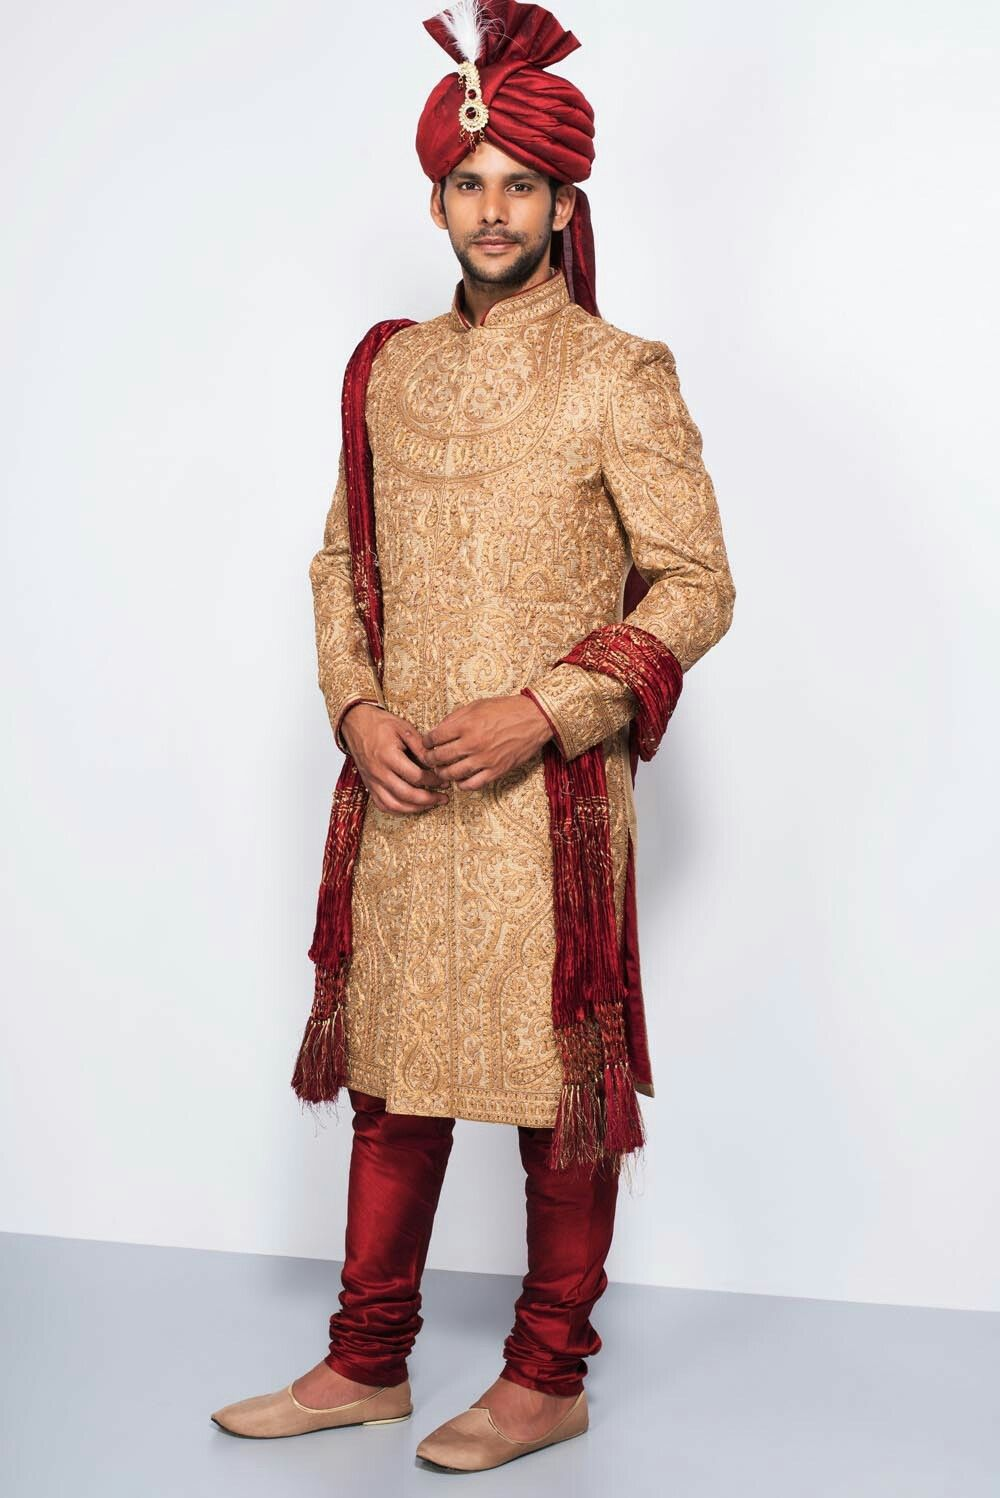 a34ddbd8c1 EKAKSH - golden embroidered all over work sherwani with stole #flyrobe  #groom #groomwear #groomsherwani #sherwani #flyrobe #wedding  #designersherwani